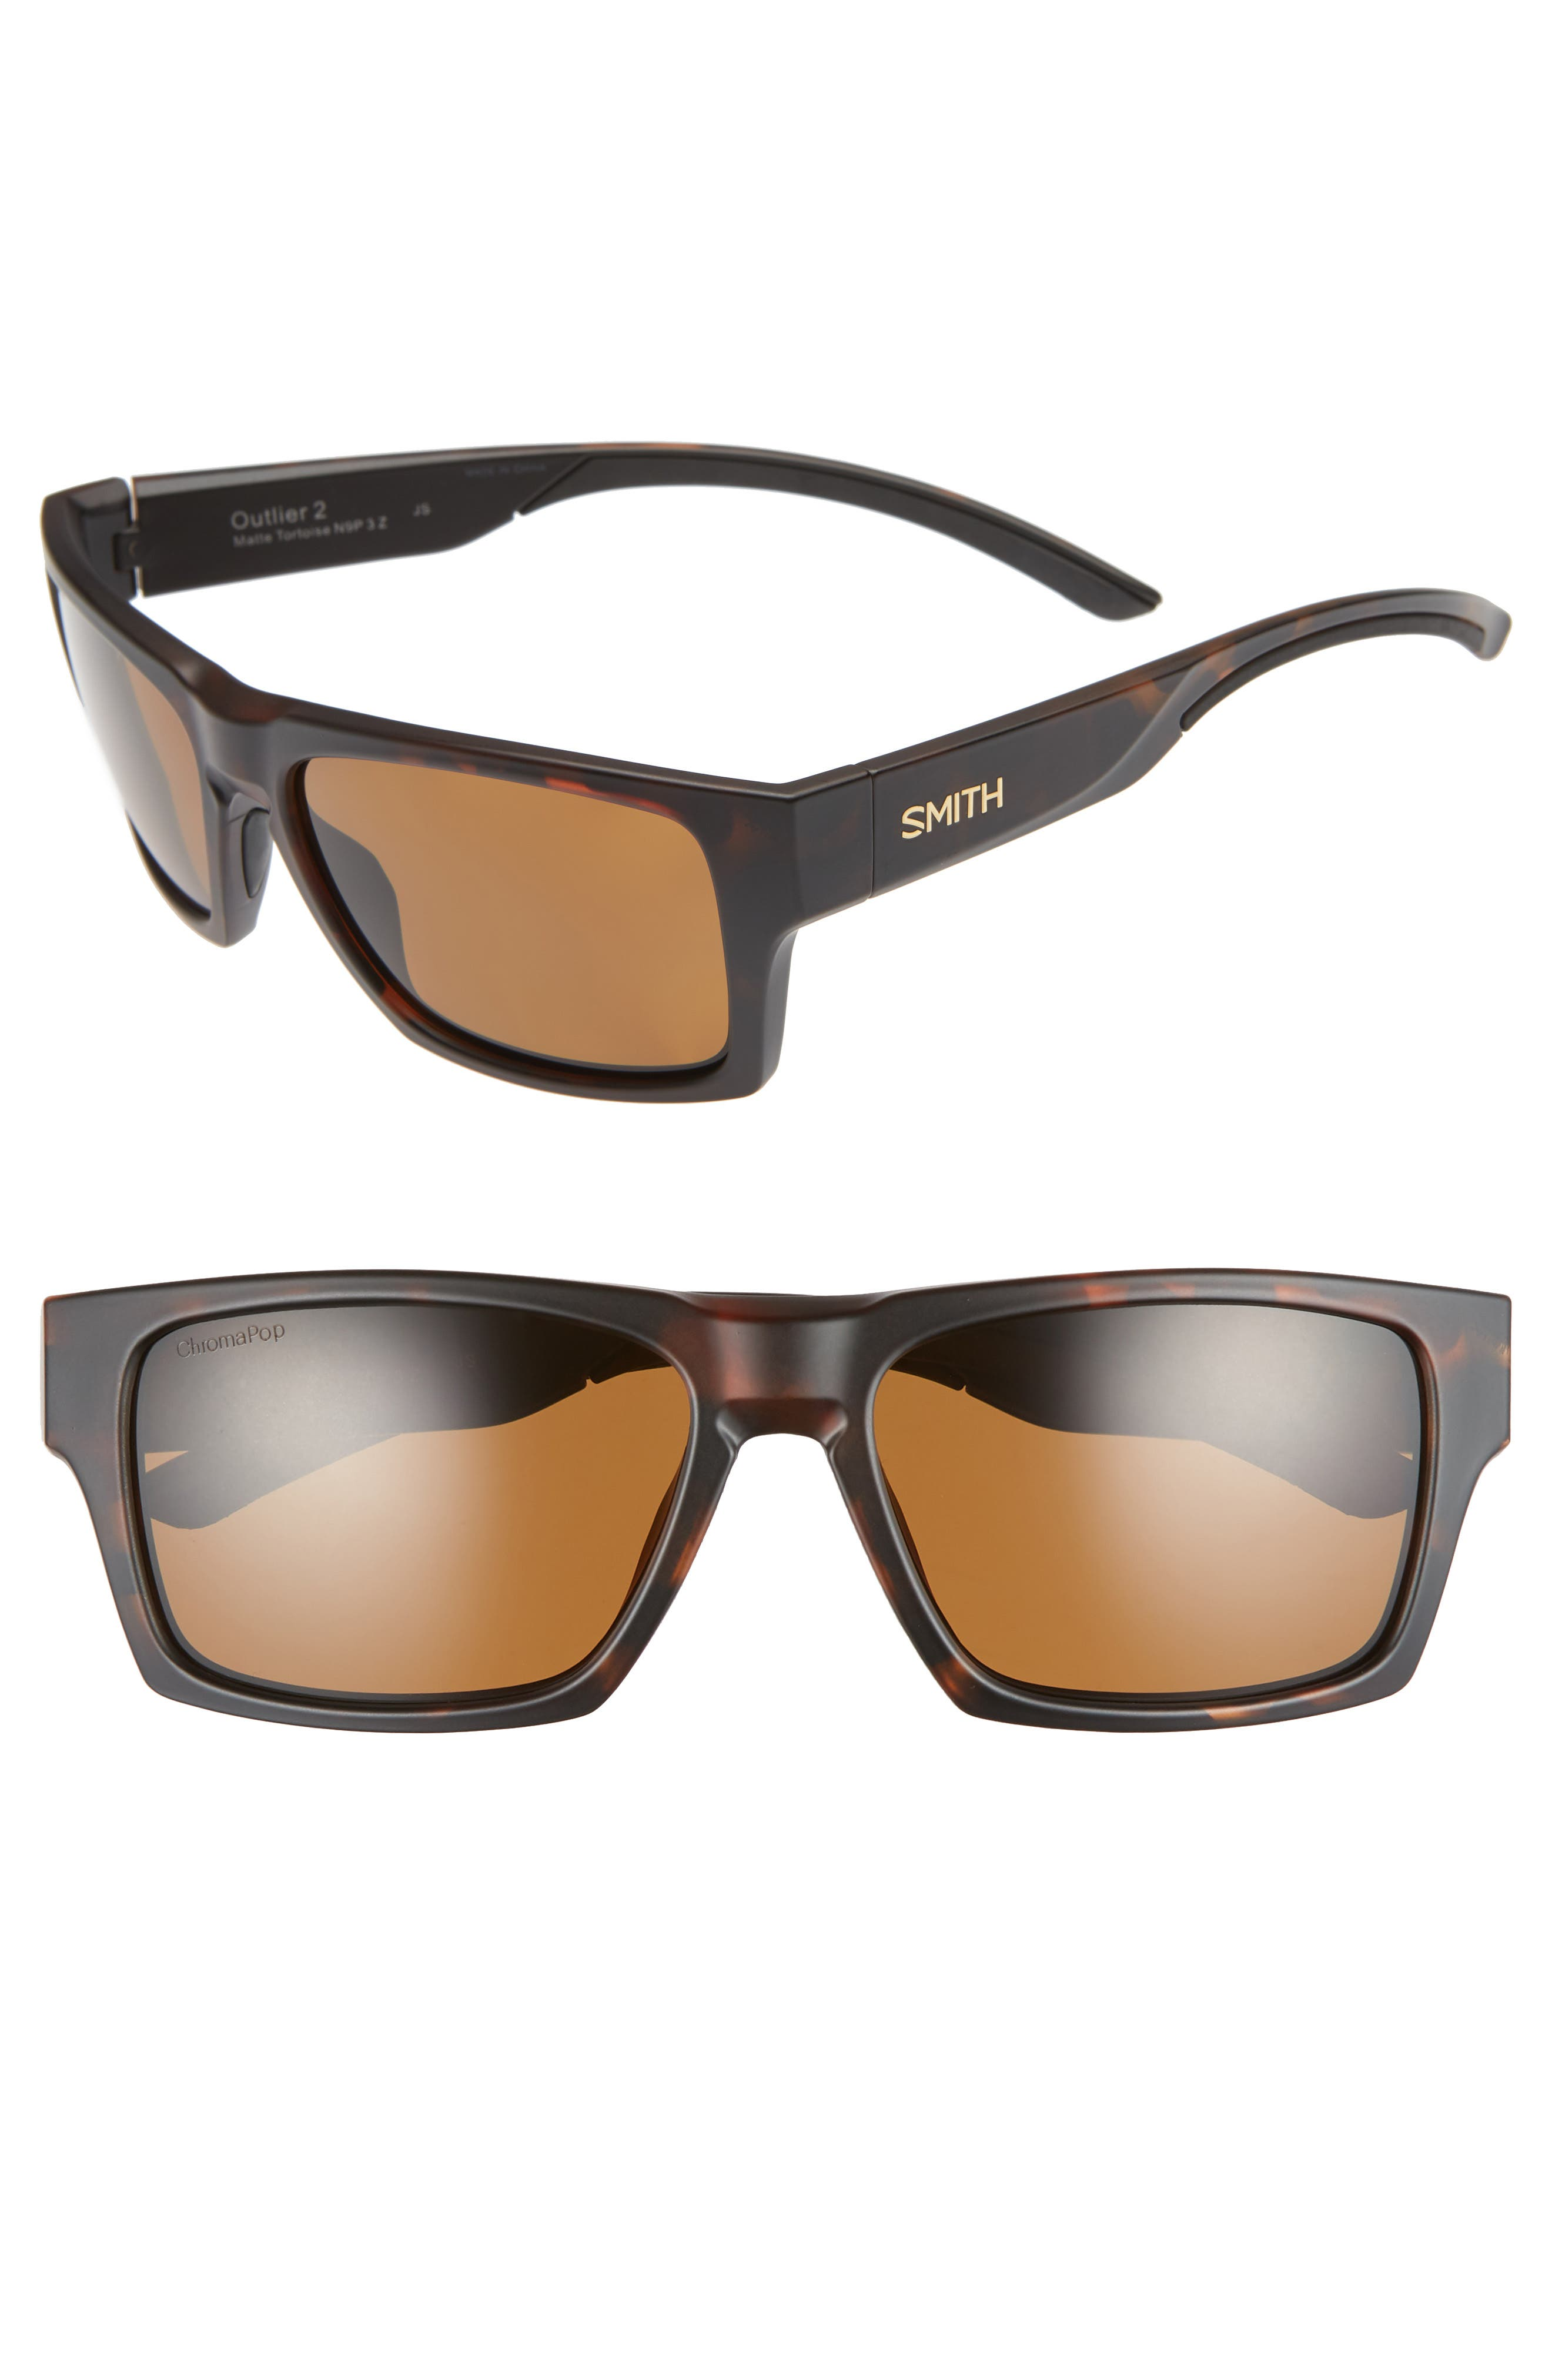 SMITH OUTLIER 2 57MM CHROMAPOP(TM) SQUARE SUNGLASSES - MATTE TORTOISE